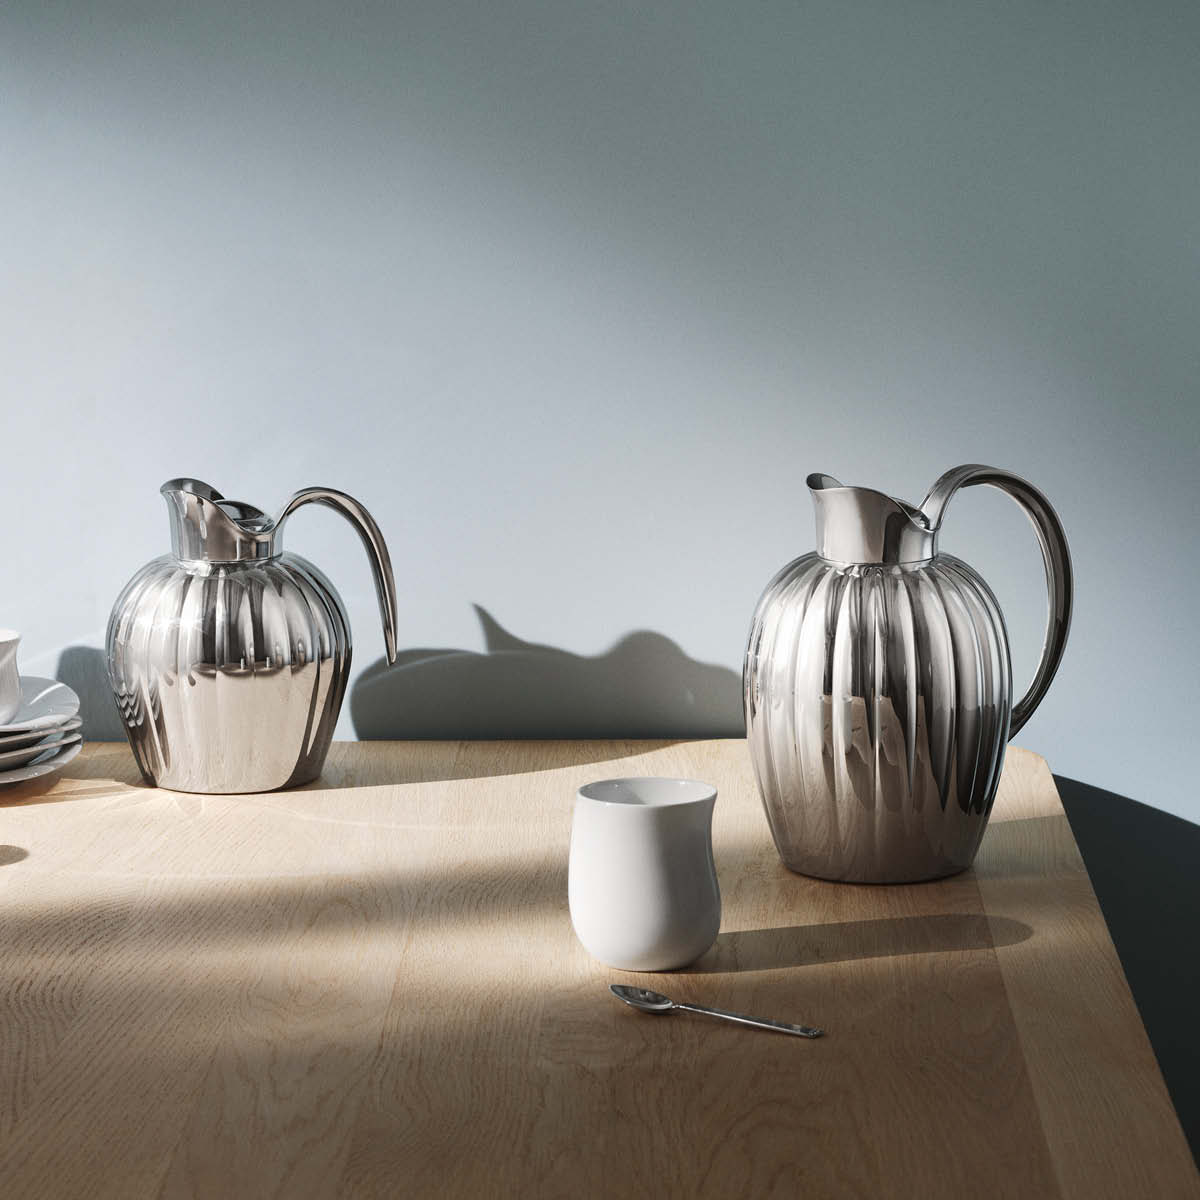 Bernadotte thermo and thermo jug in stainless steel and cobra thermo cup in white porcelain